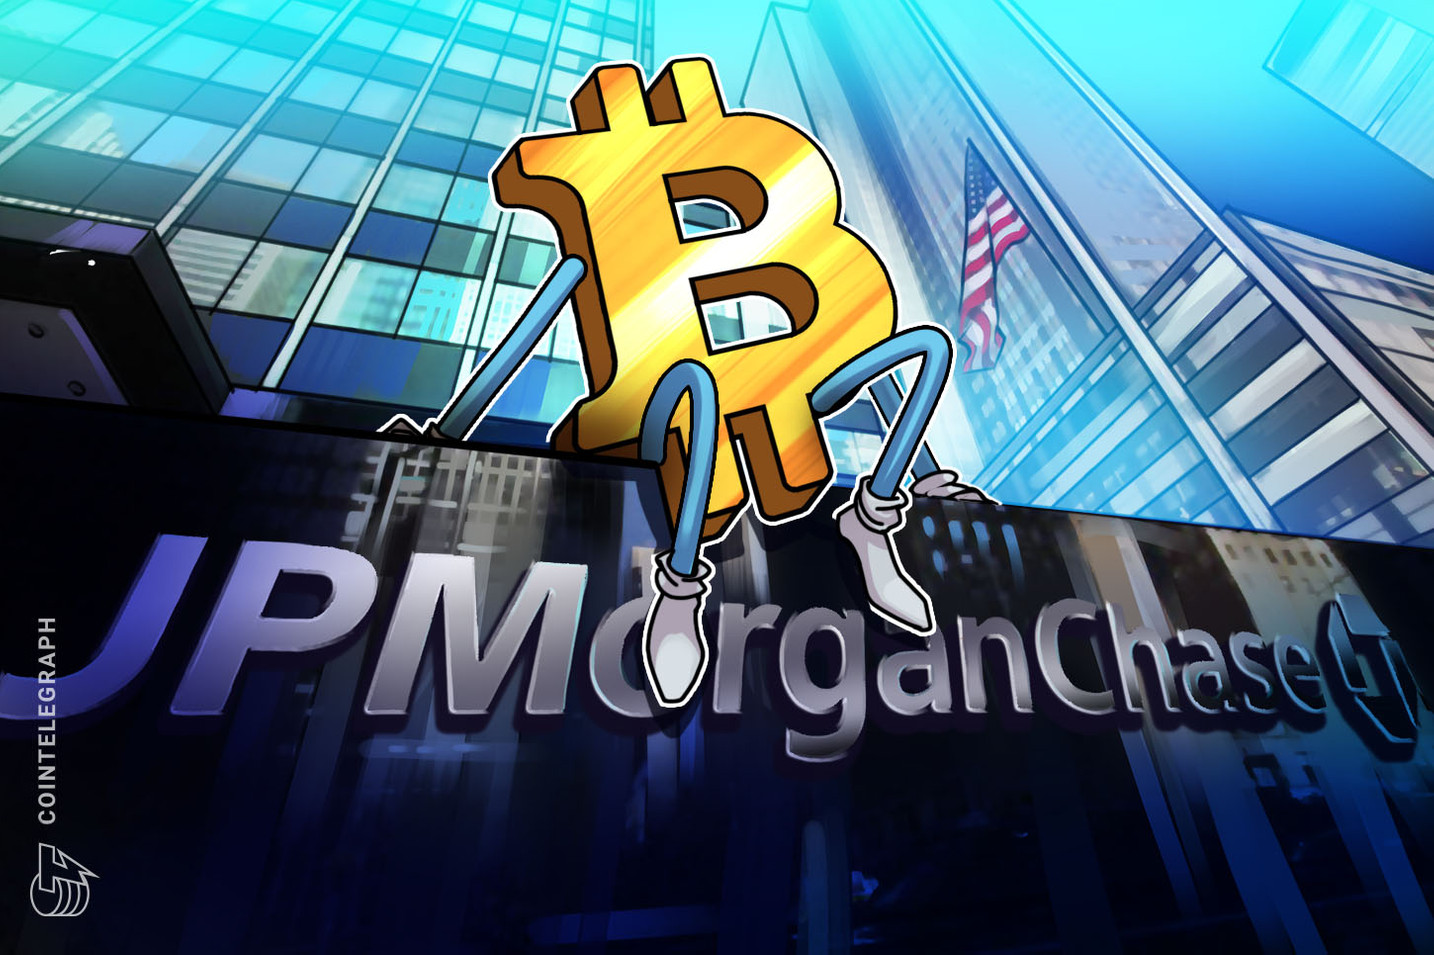 JPMorgan note to clients endorses 1% allocation to Bitcoin as a hedge